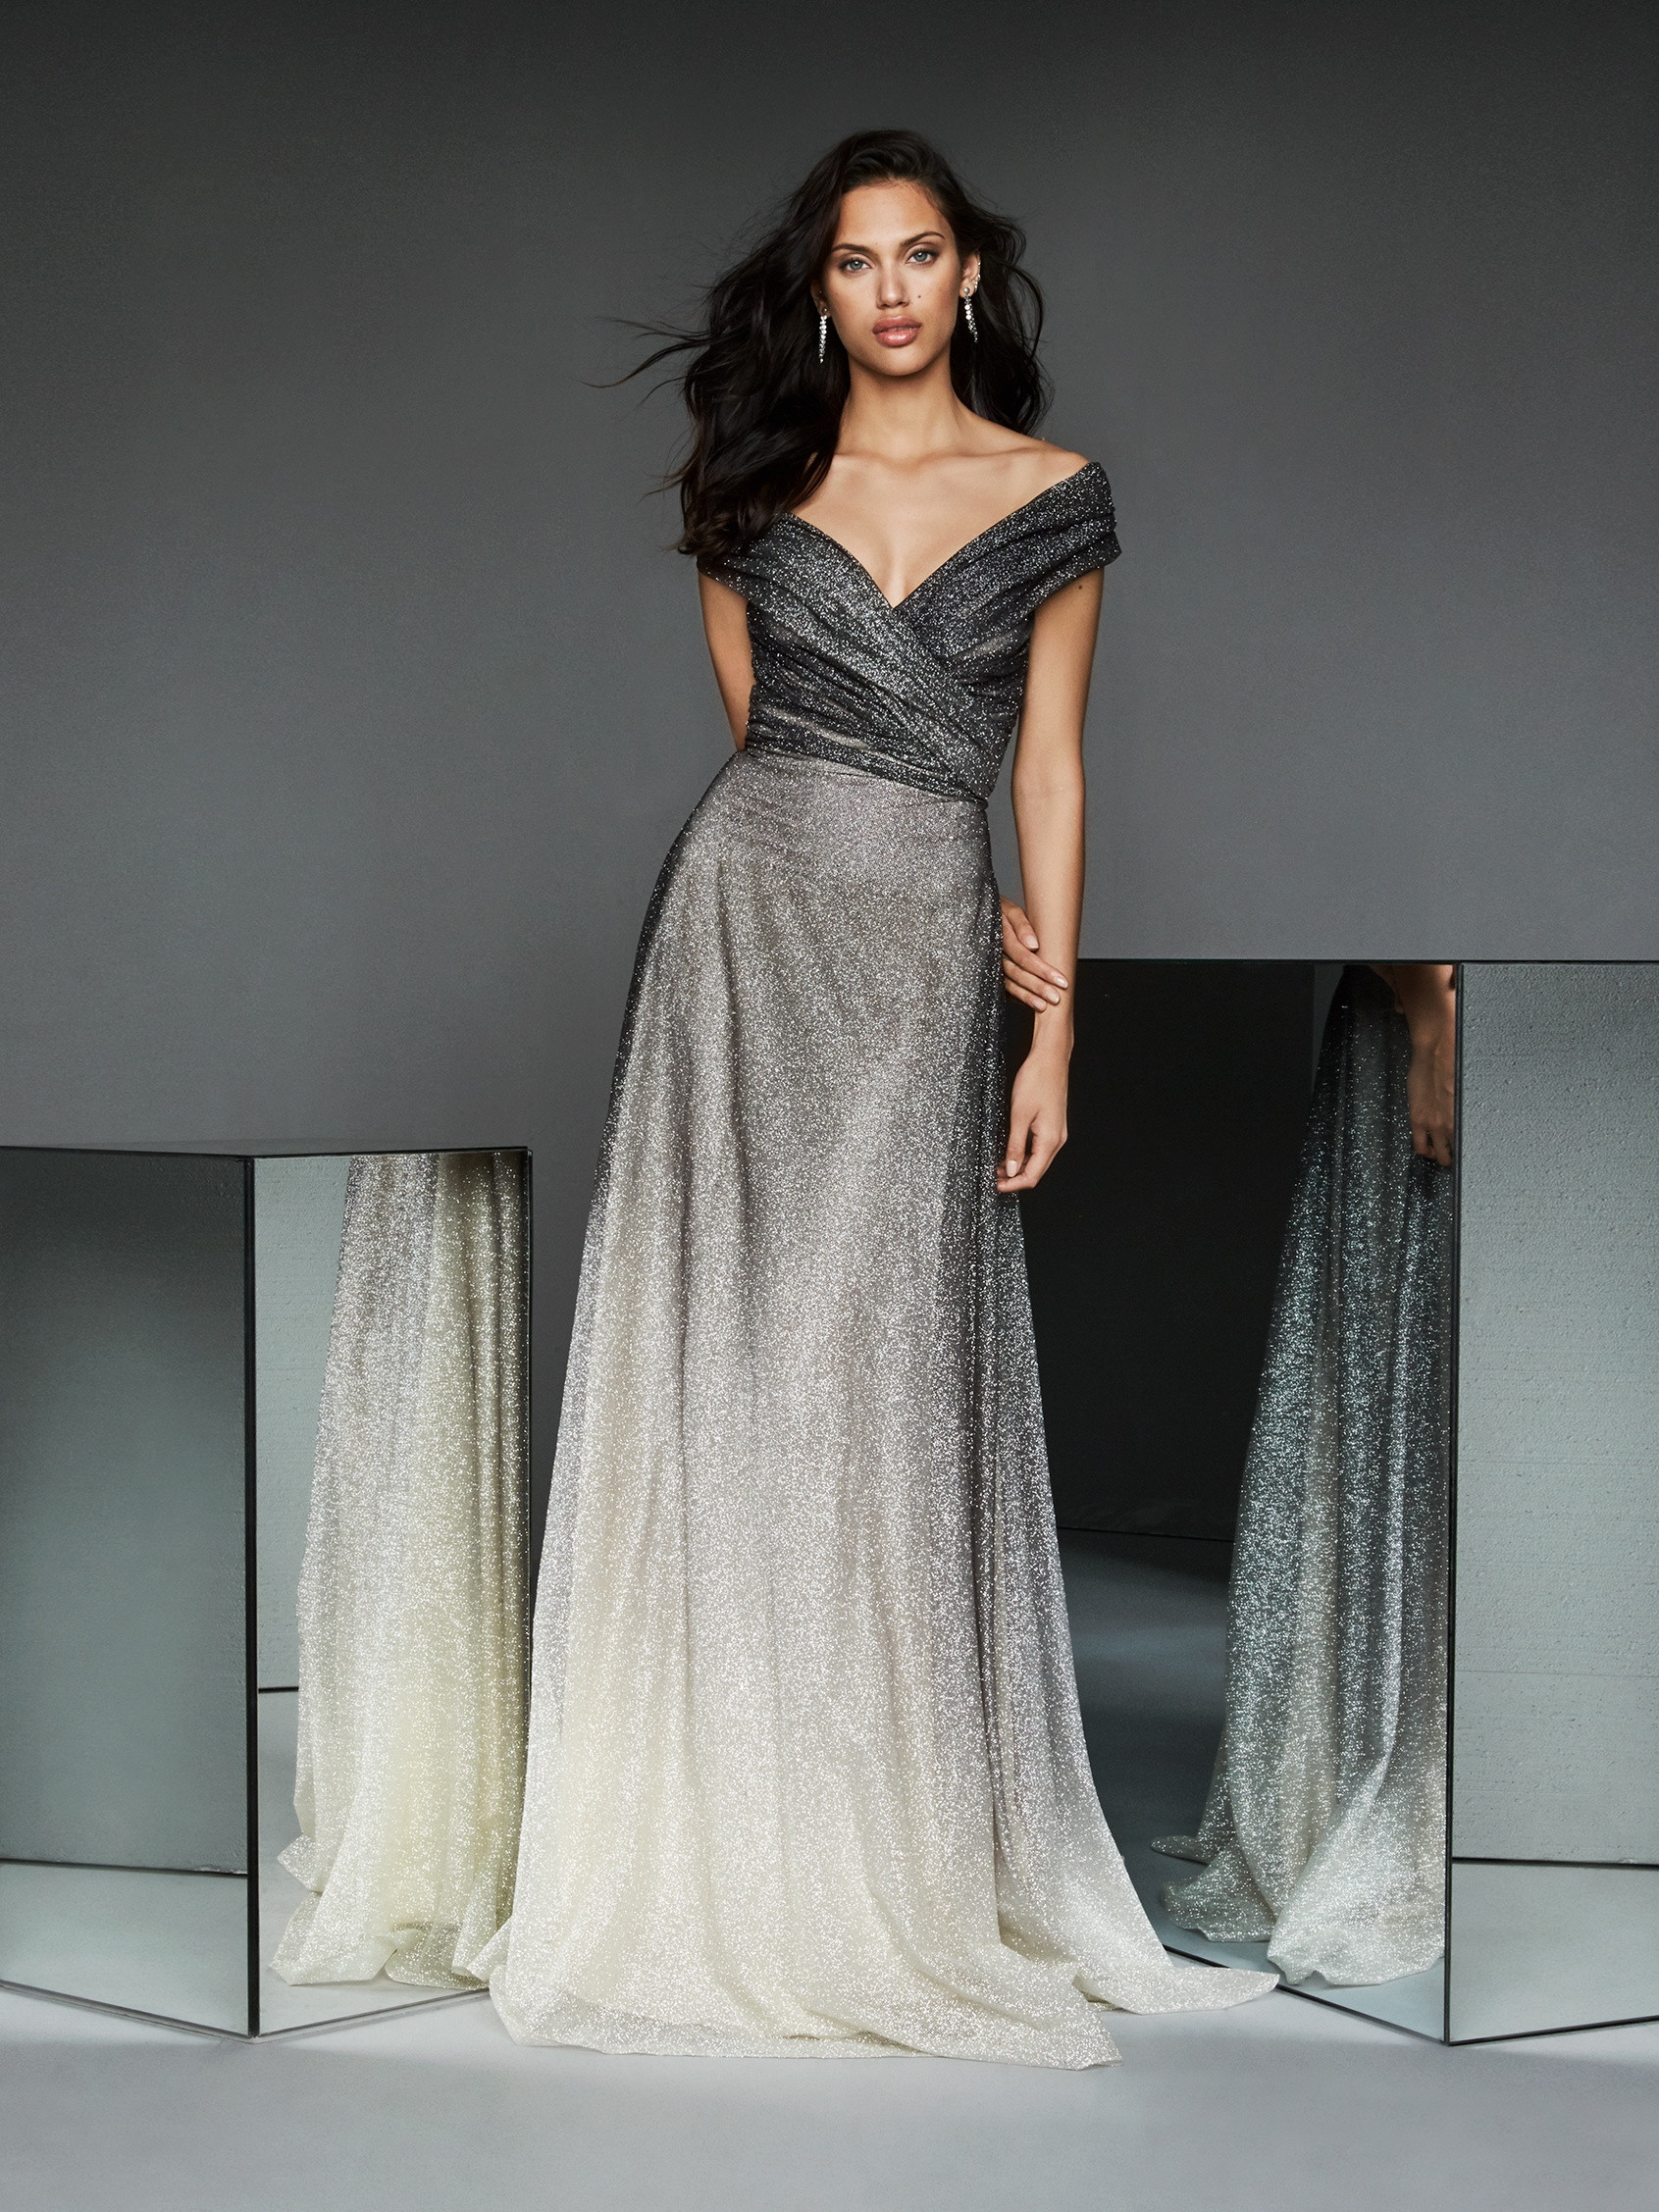 Mira Couture Pronovias TM STYLE 68 Eveningwear Mother of the Bride Groom Chicago Boutique